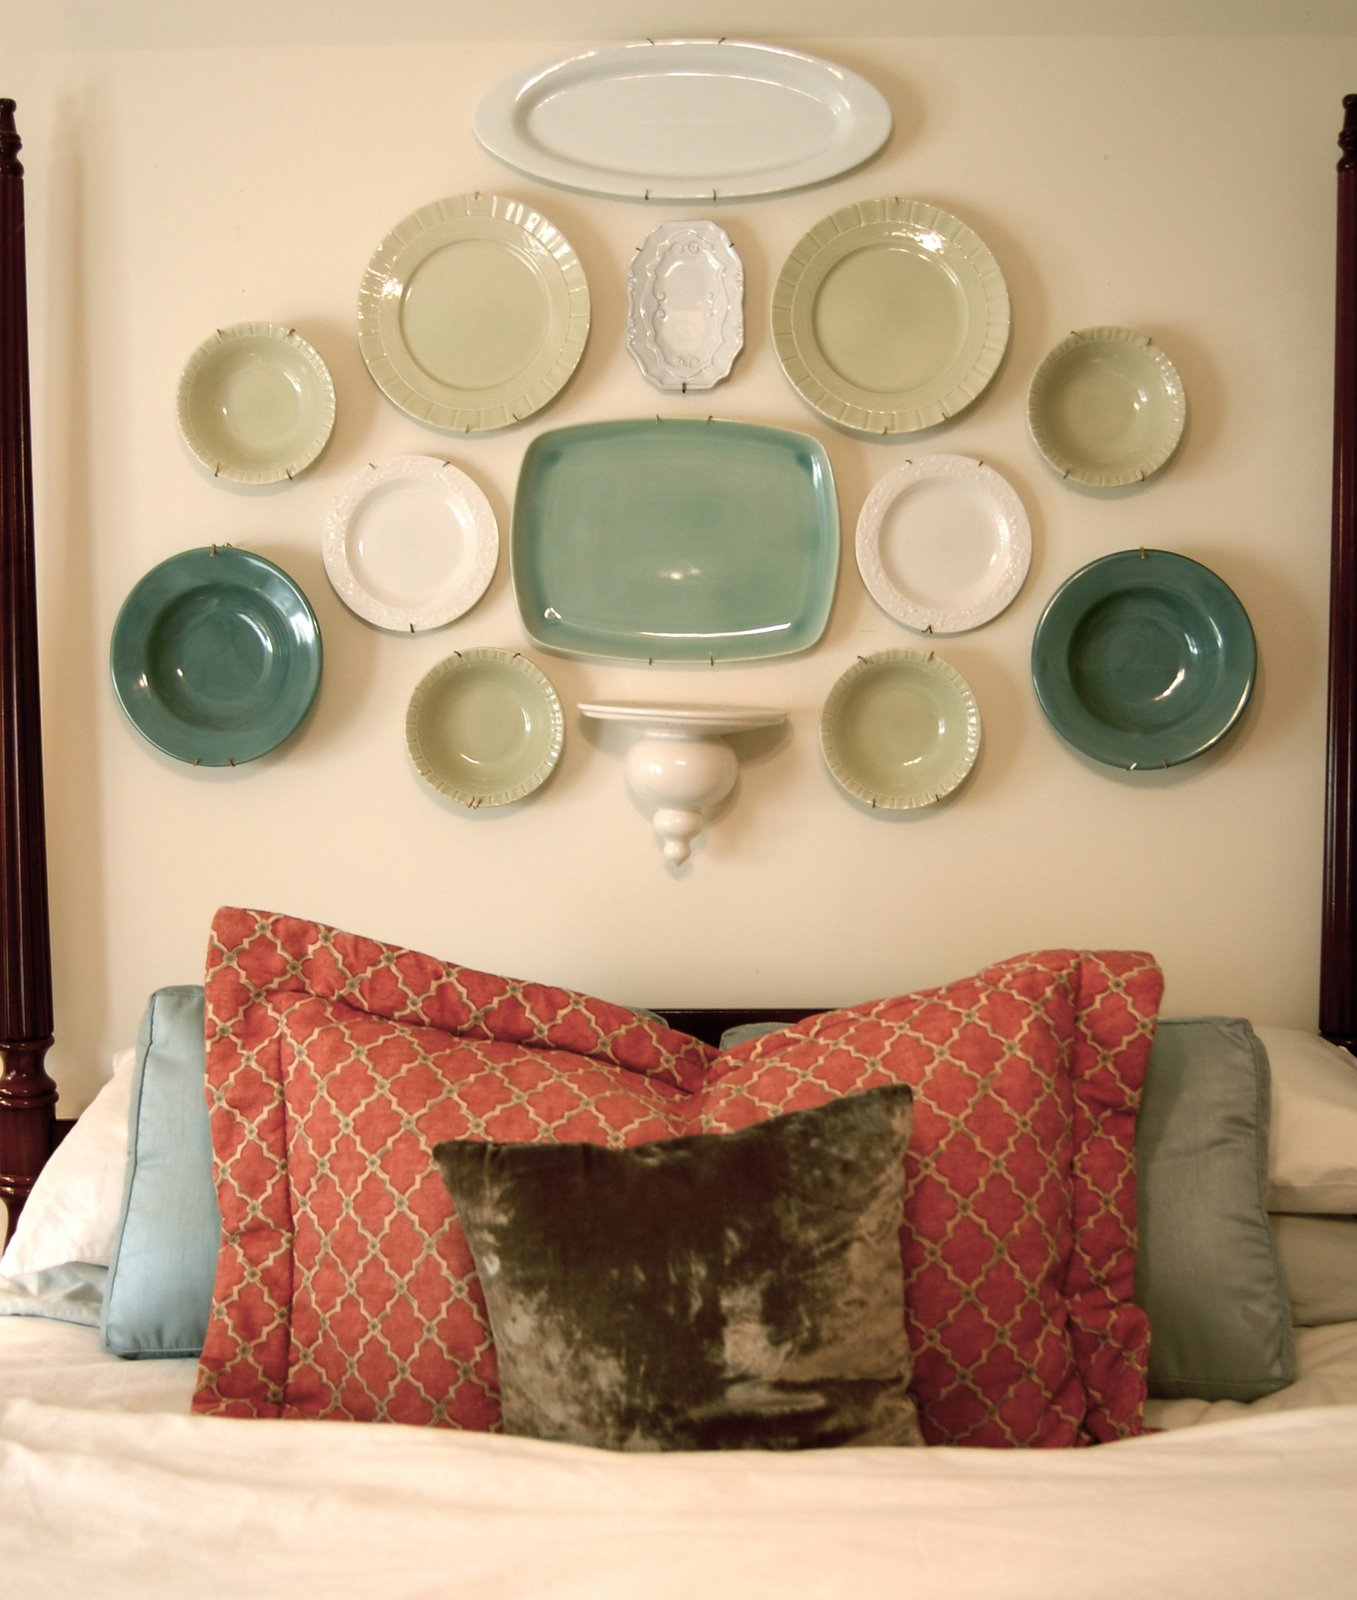 DIY A Beafutiful Headboard From Plates.